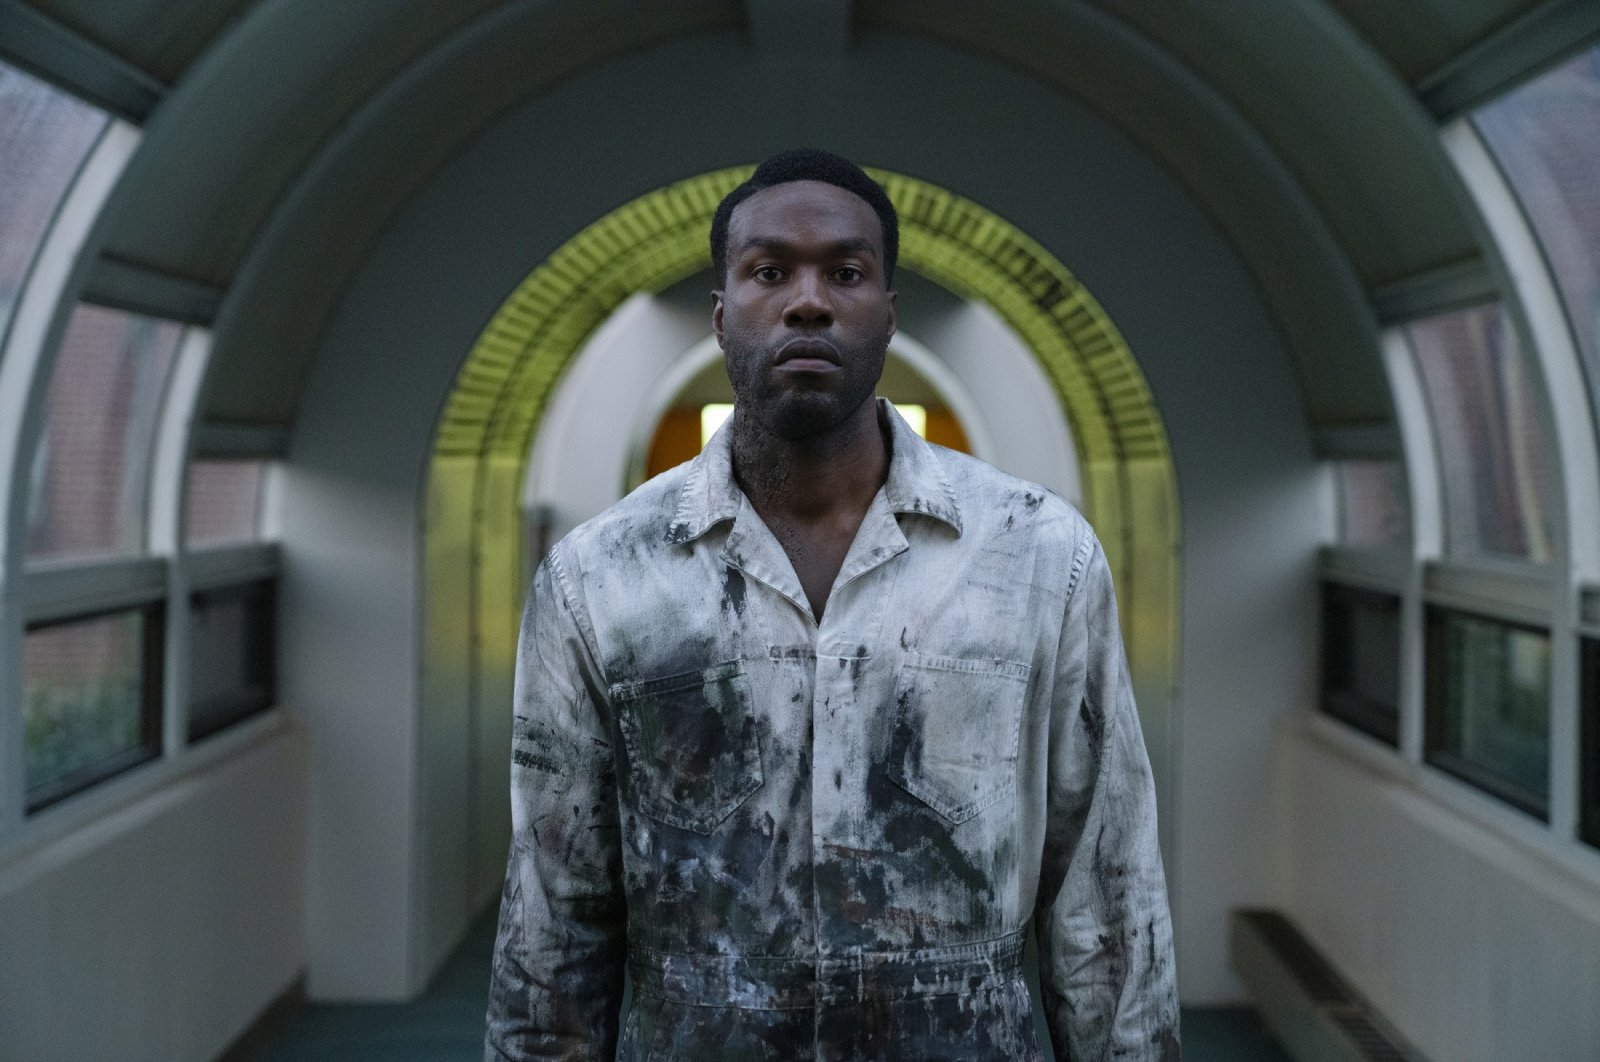 """Yahya Abdul-Mateen II as Anthony McCoy, in a scene from the film """"Candyman,""""directed by Nia DaCosta. (AP Photo)"""